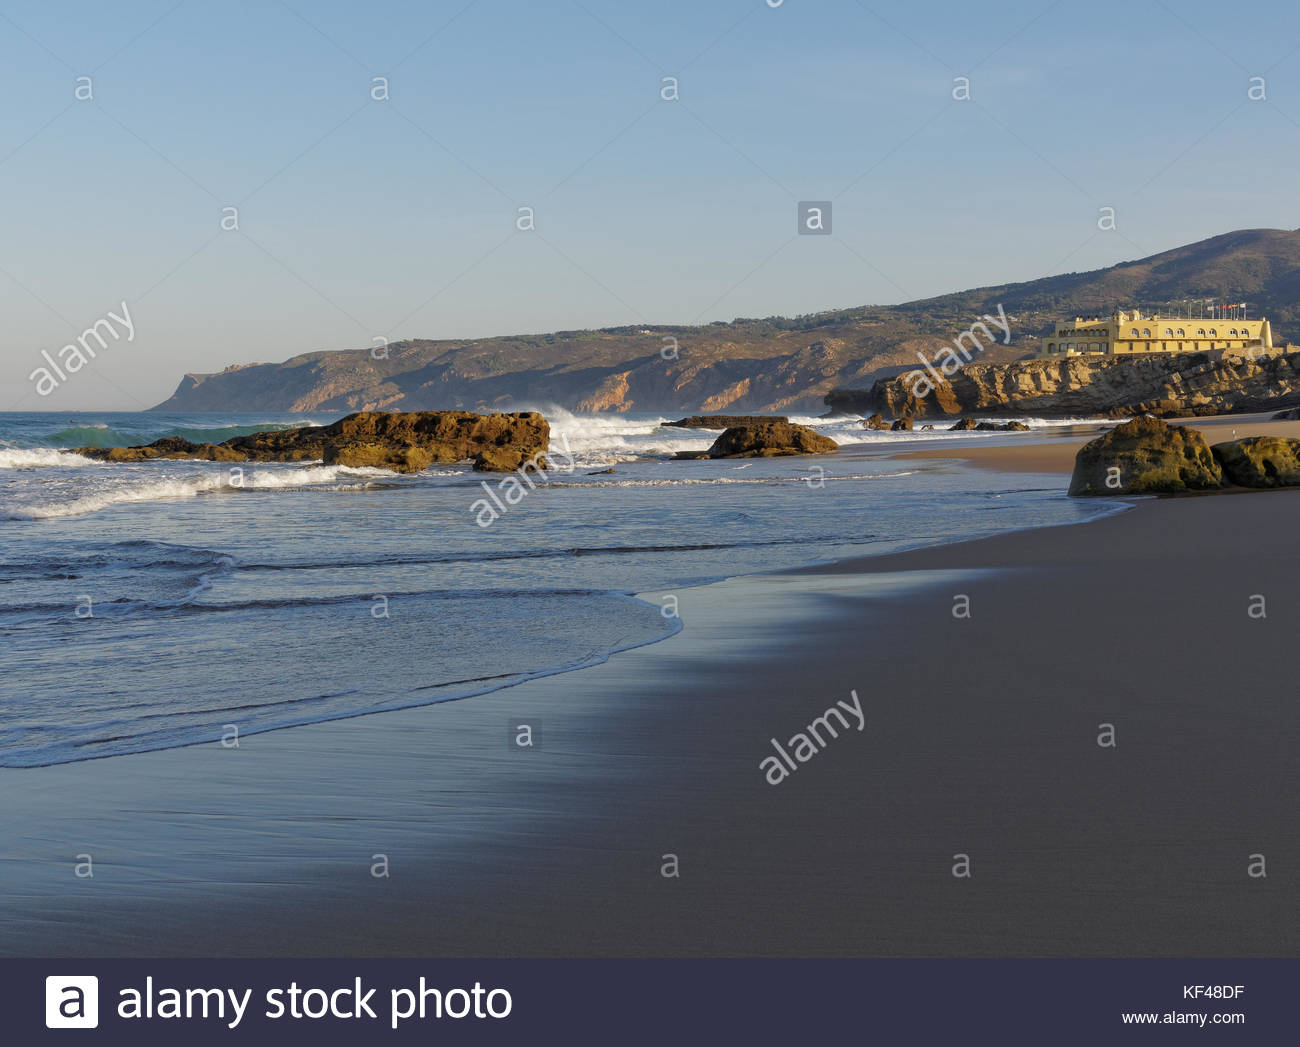 View of Hotel Fortaleza do Guincho from rocky beach, sunrise, Portugal - Stock Image